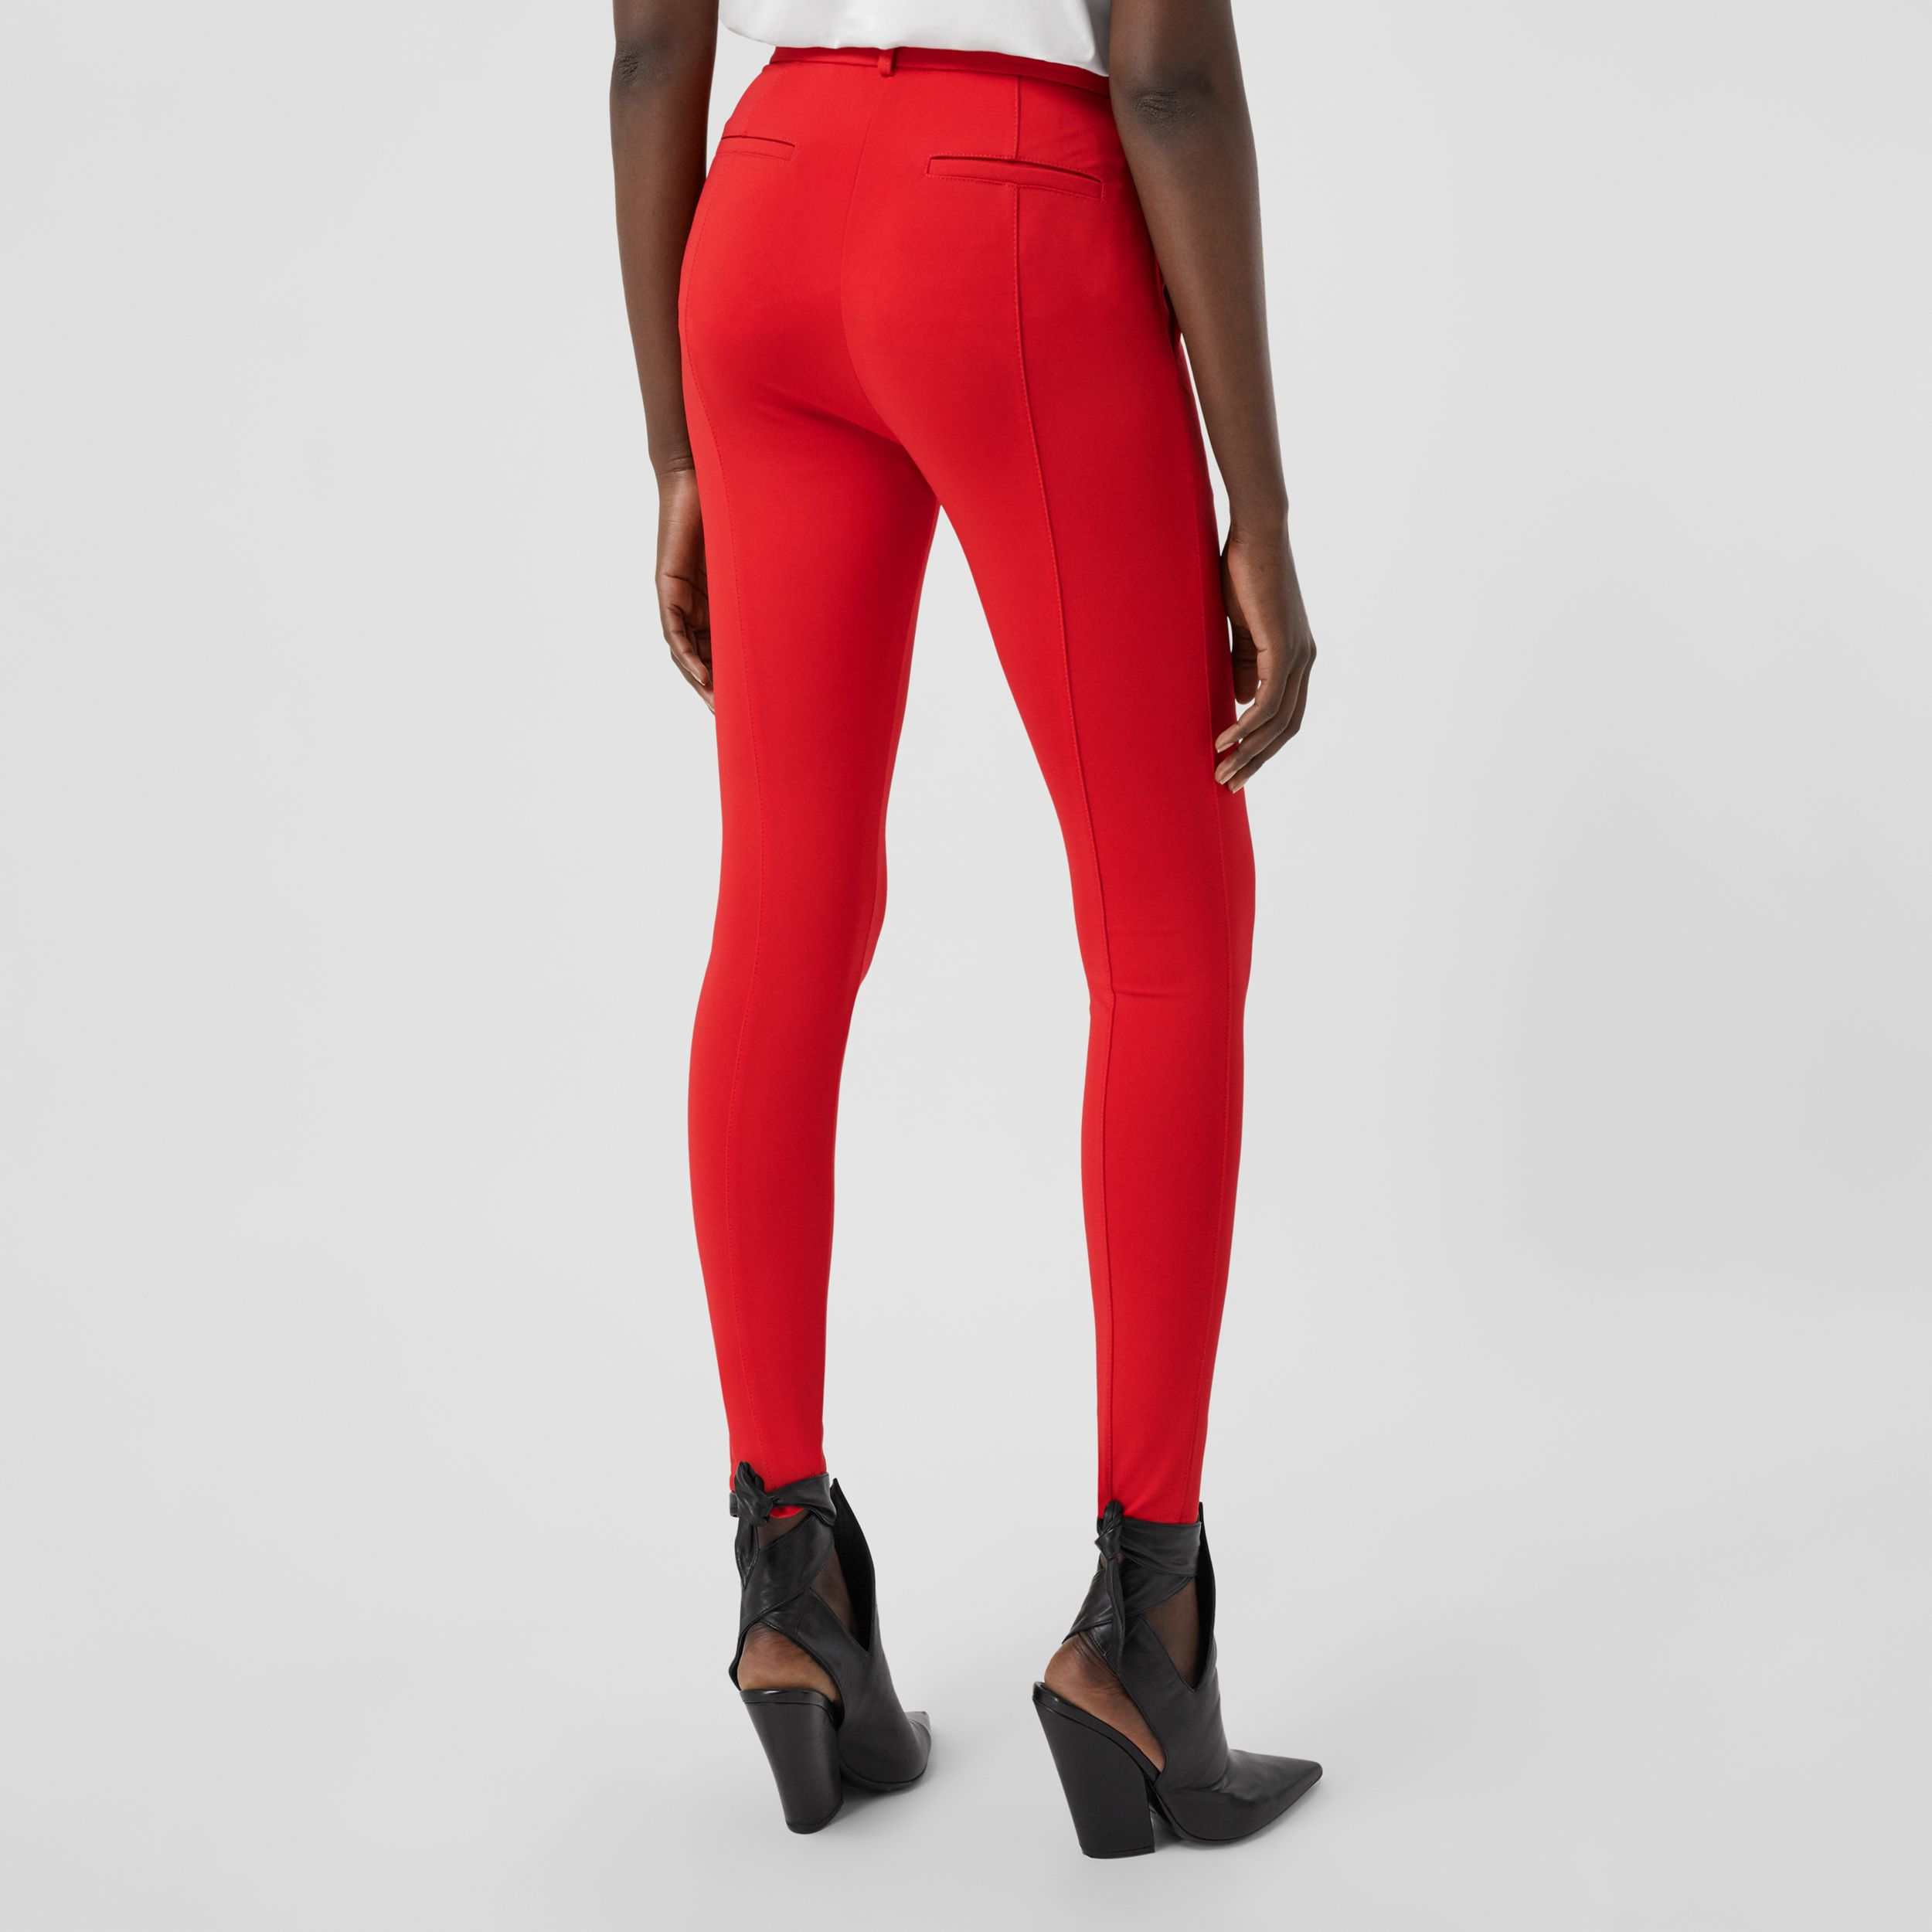 Stretch Jersey Jodhpurs in Bright Red - Women | Burberry - 2